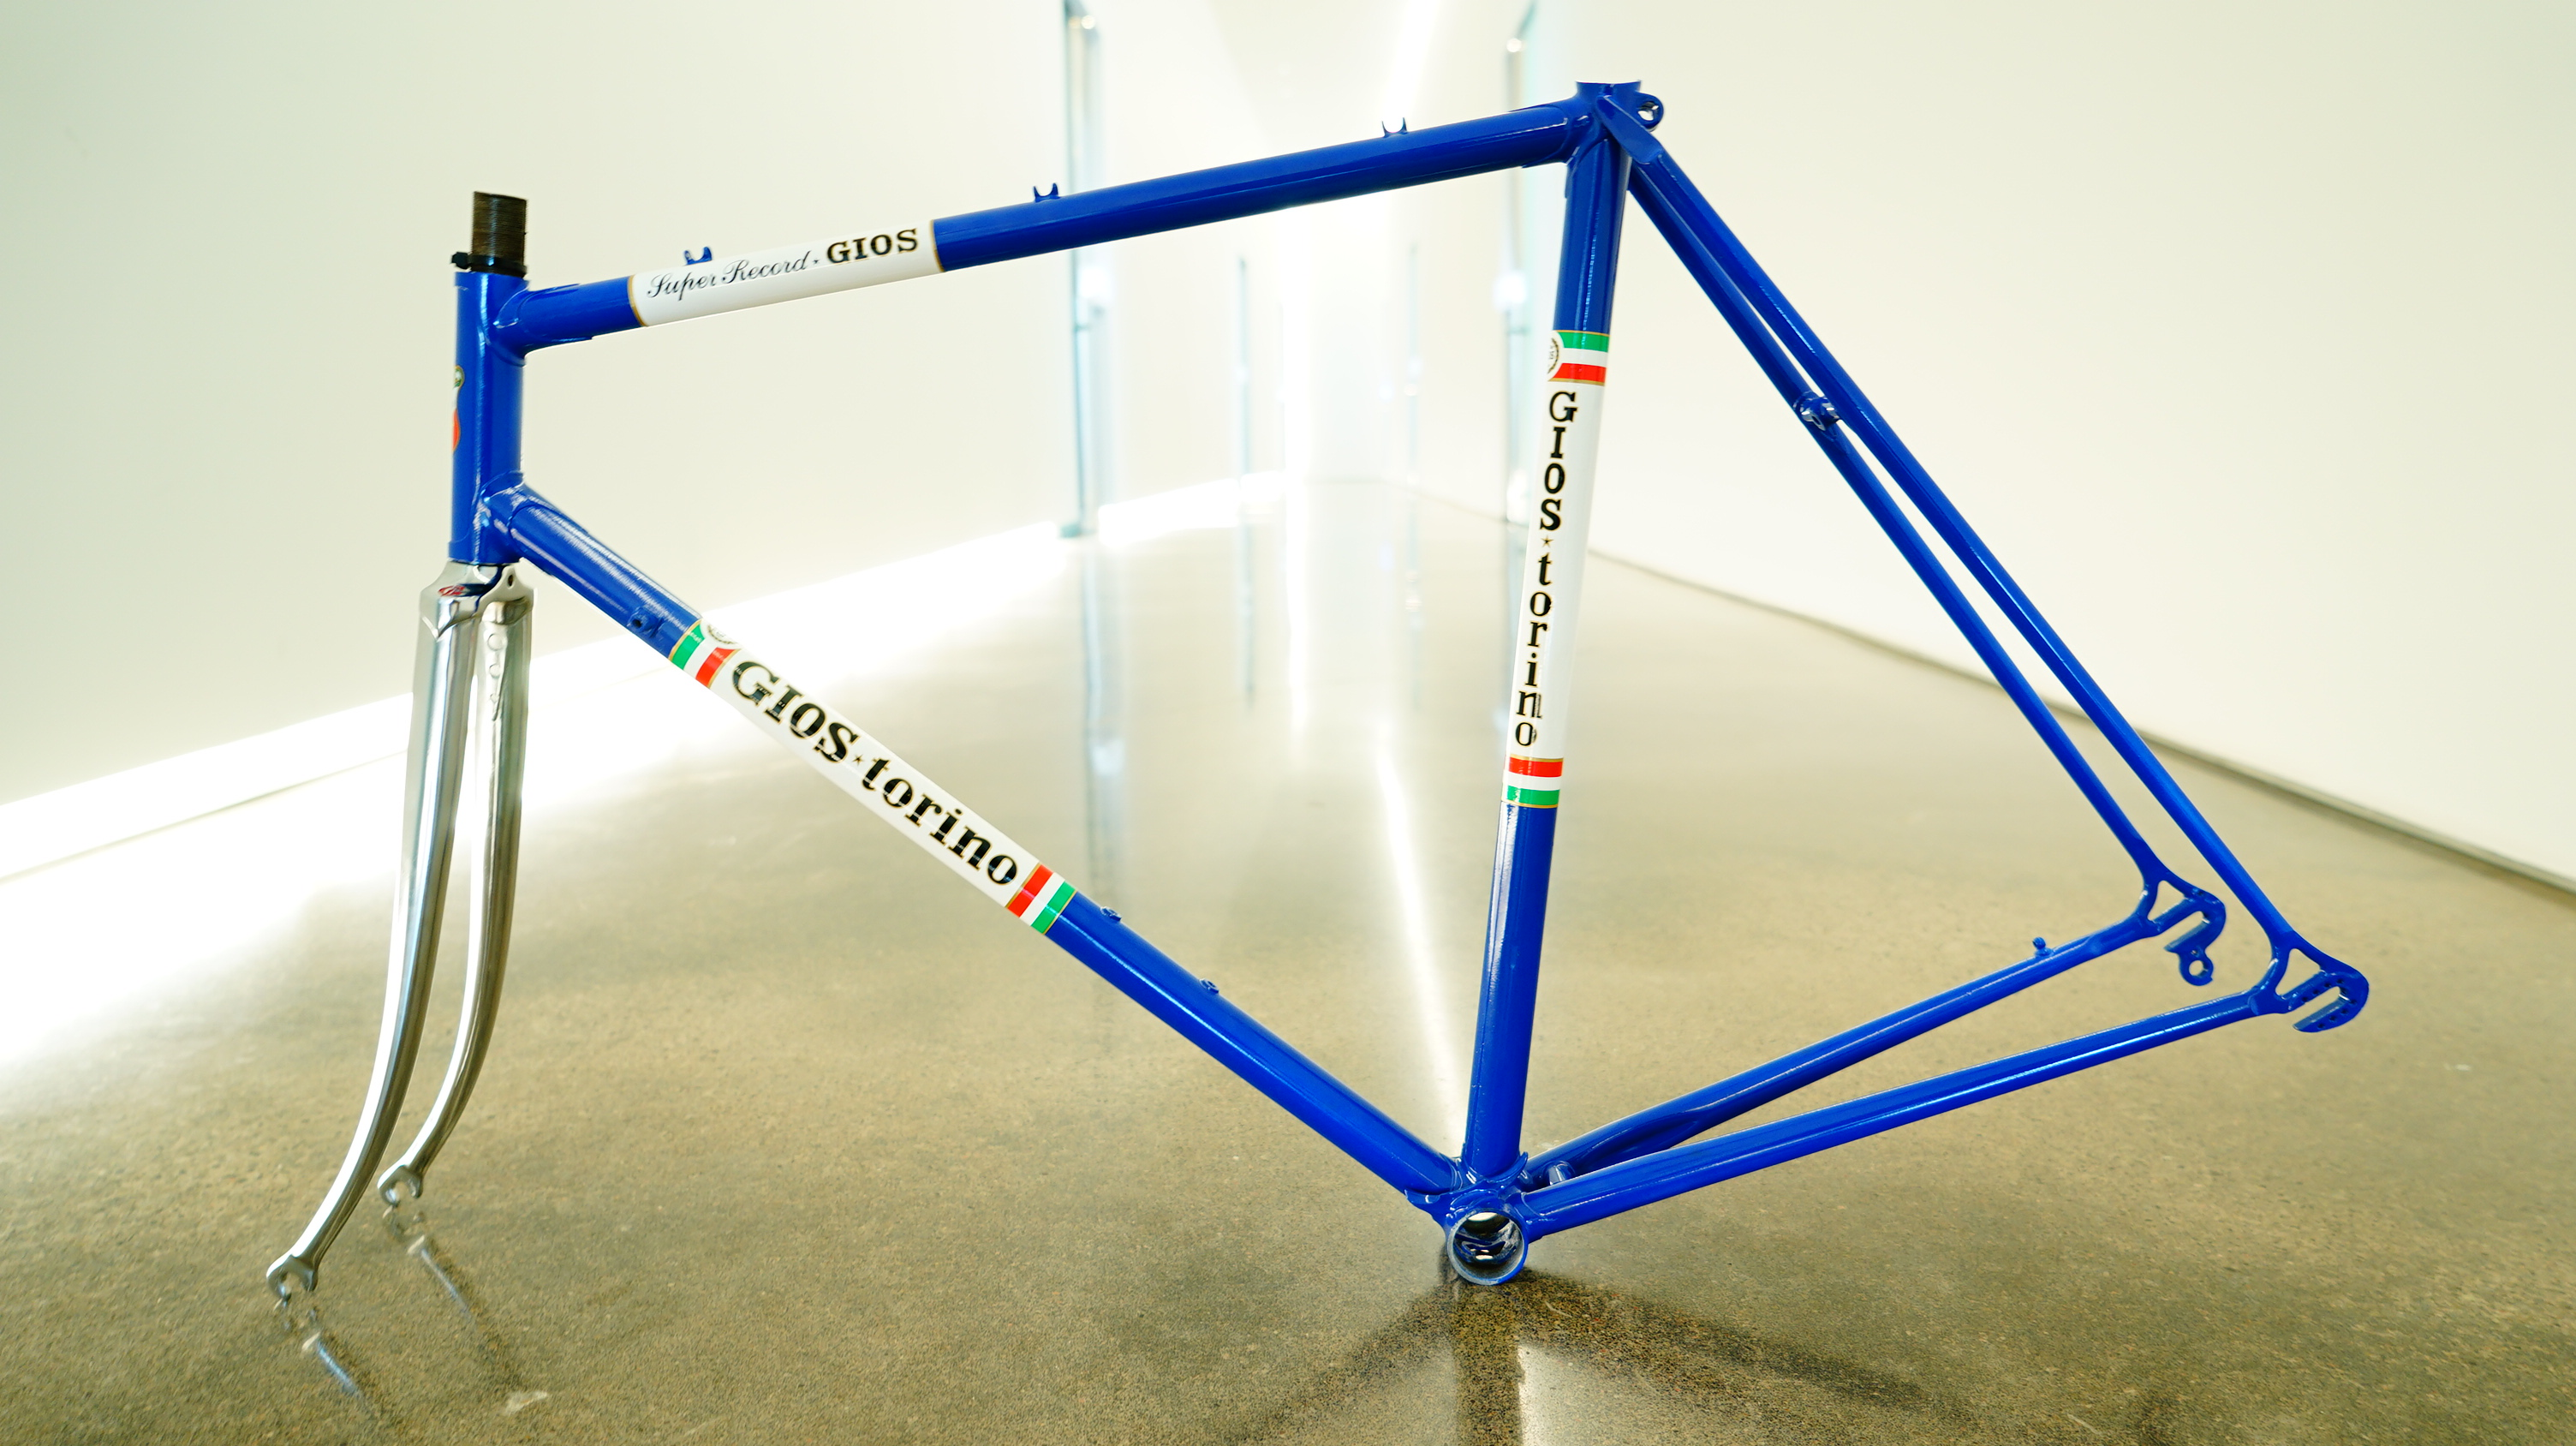 Gios Torion Frame for Sale!! 55 56cm. | pedalpusher